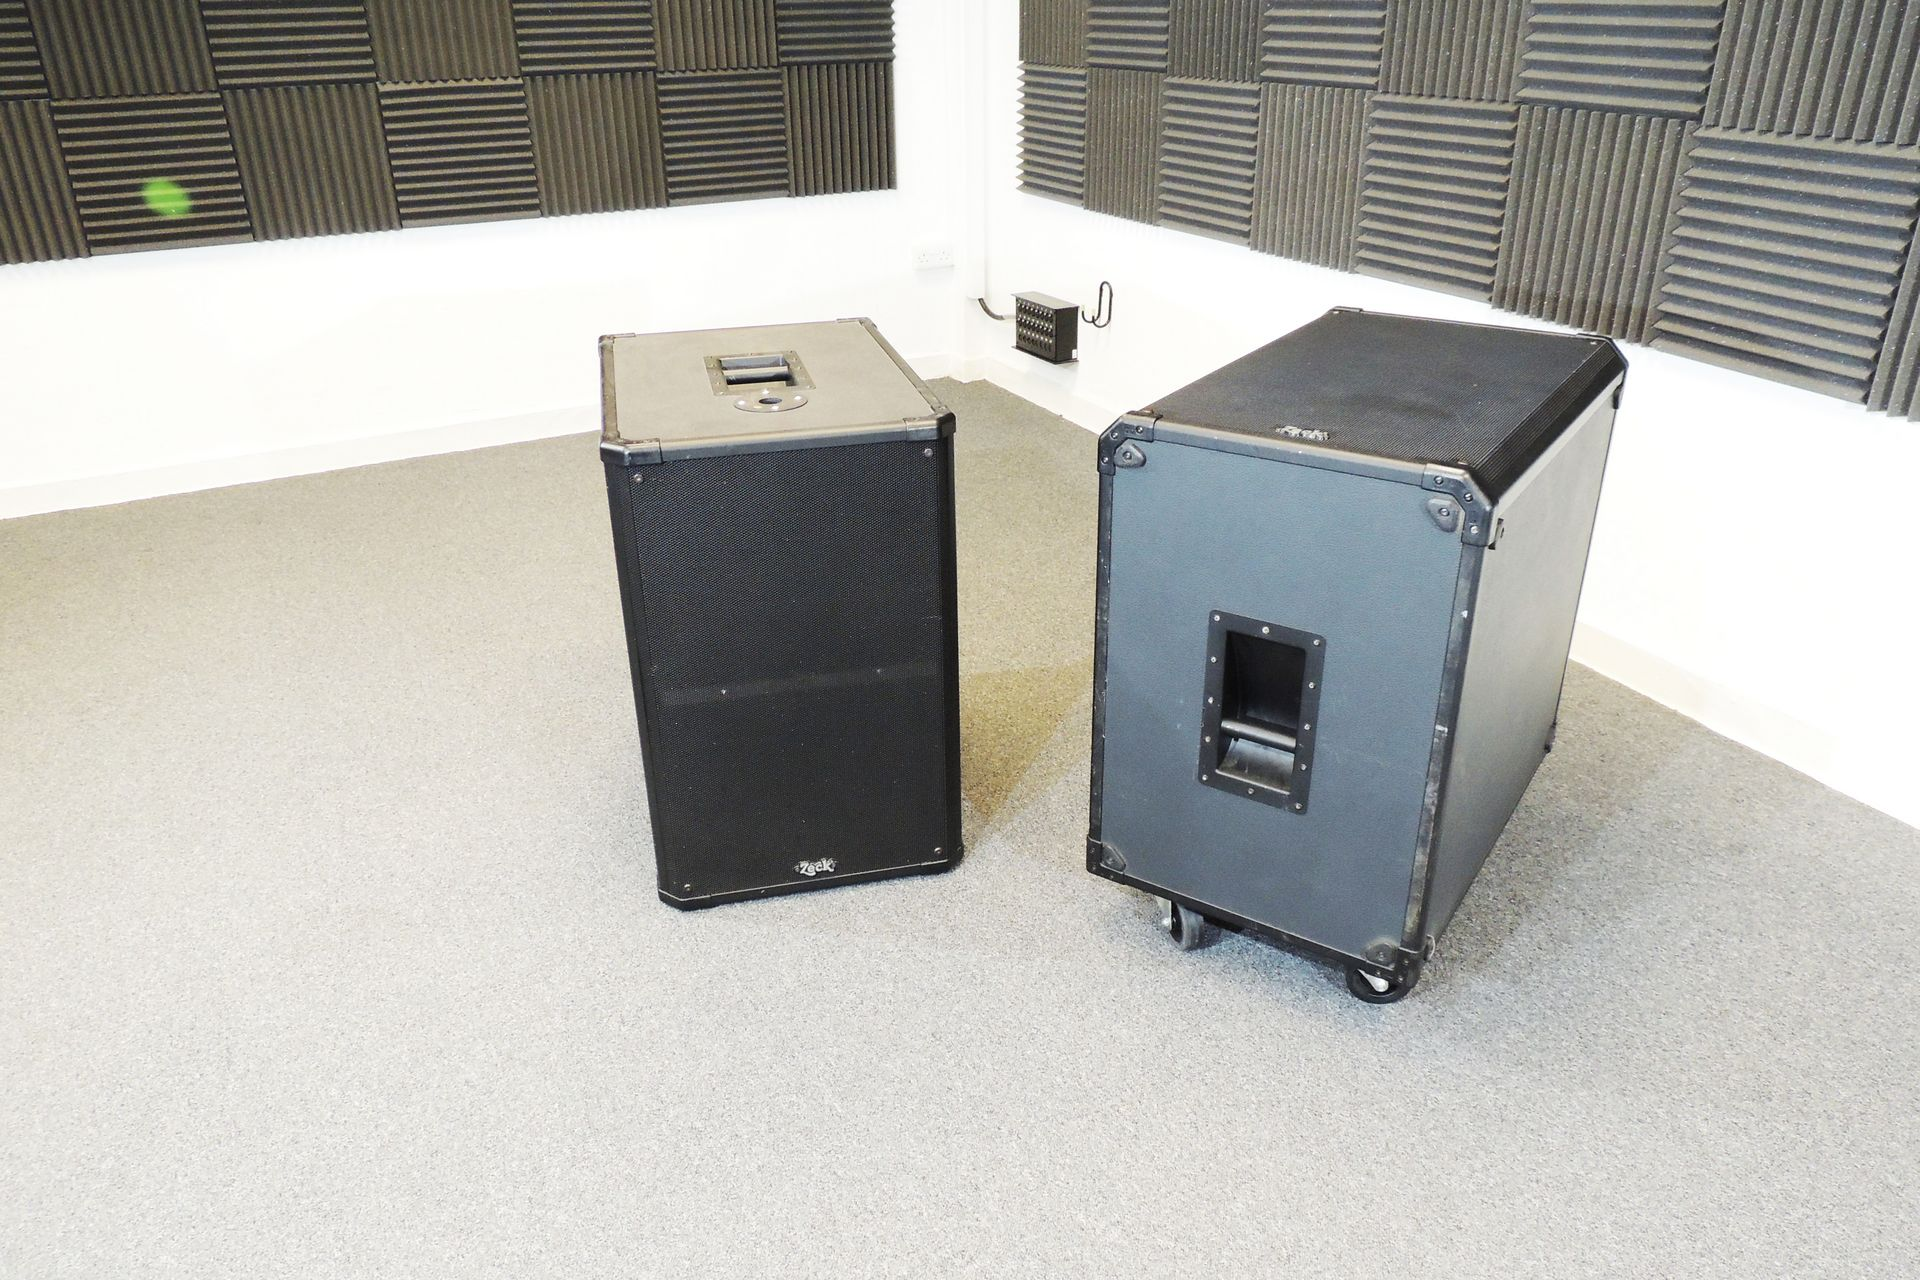 PA system 1.7kW old school analogue for sale at Plasma Music